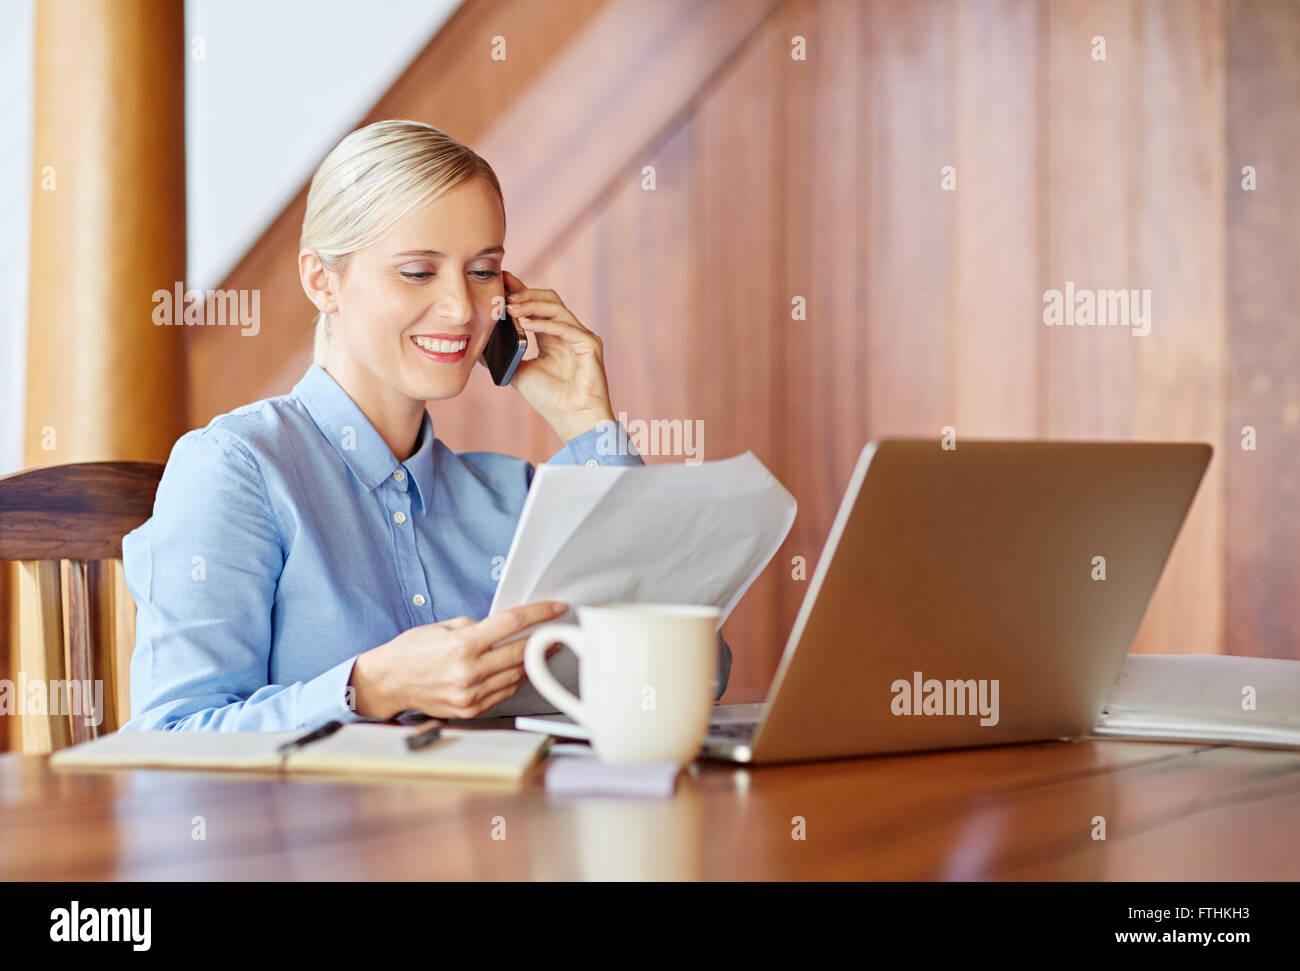 Making appointment for next business meeting - Stock Image